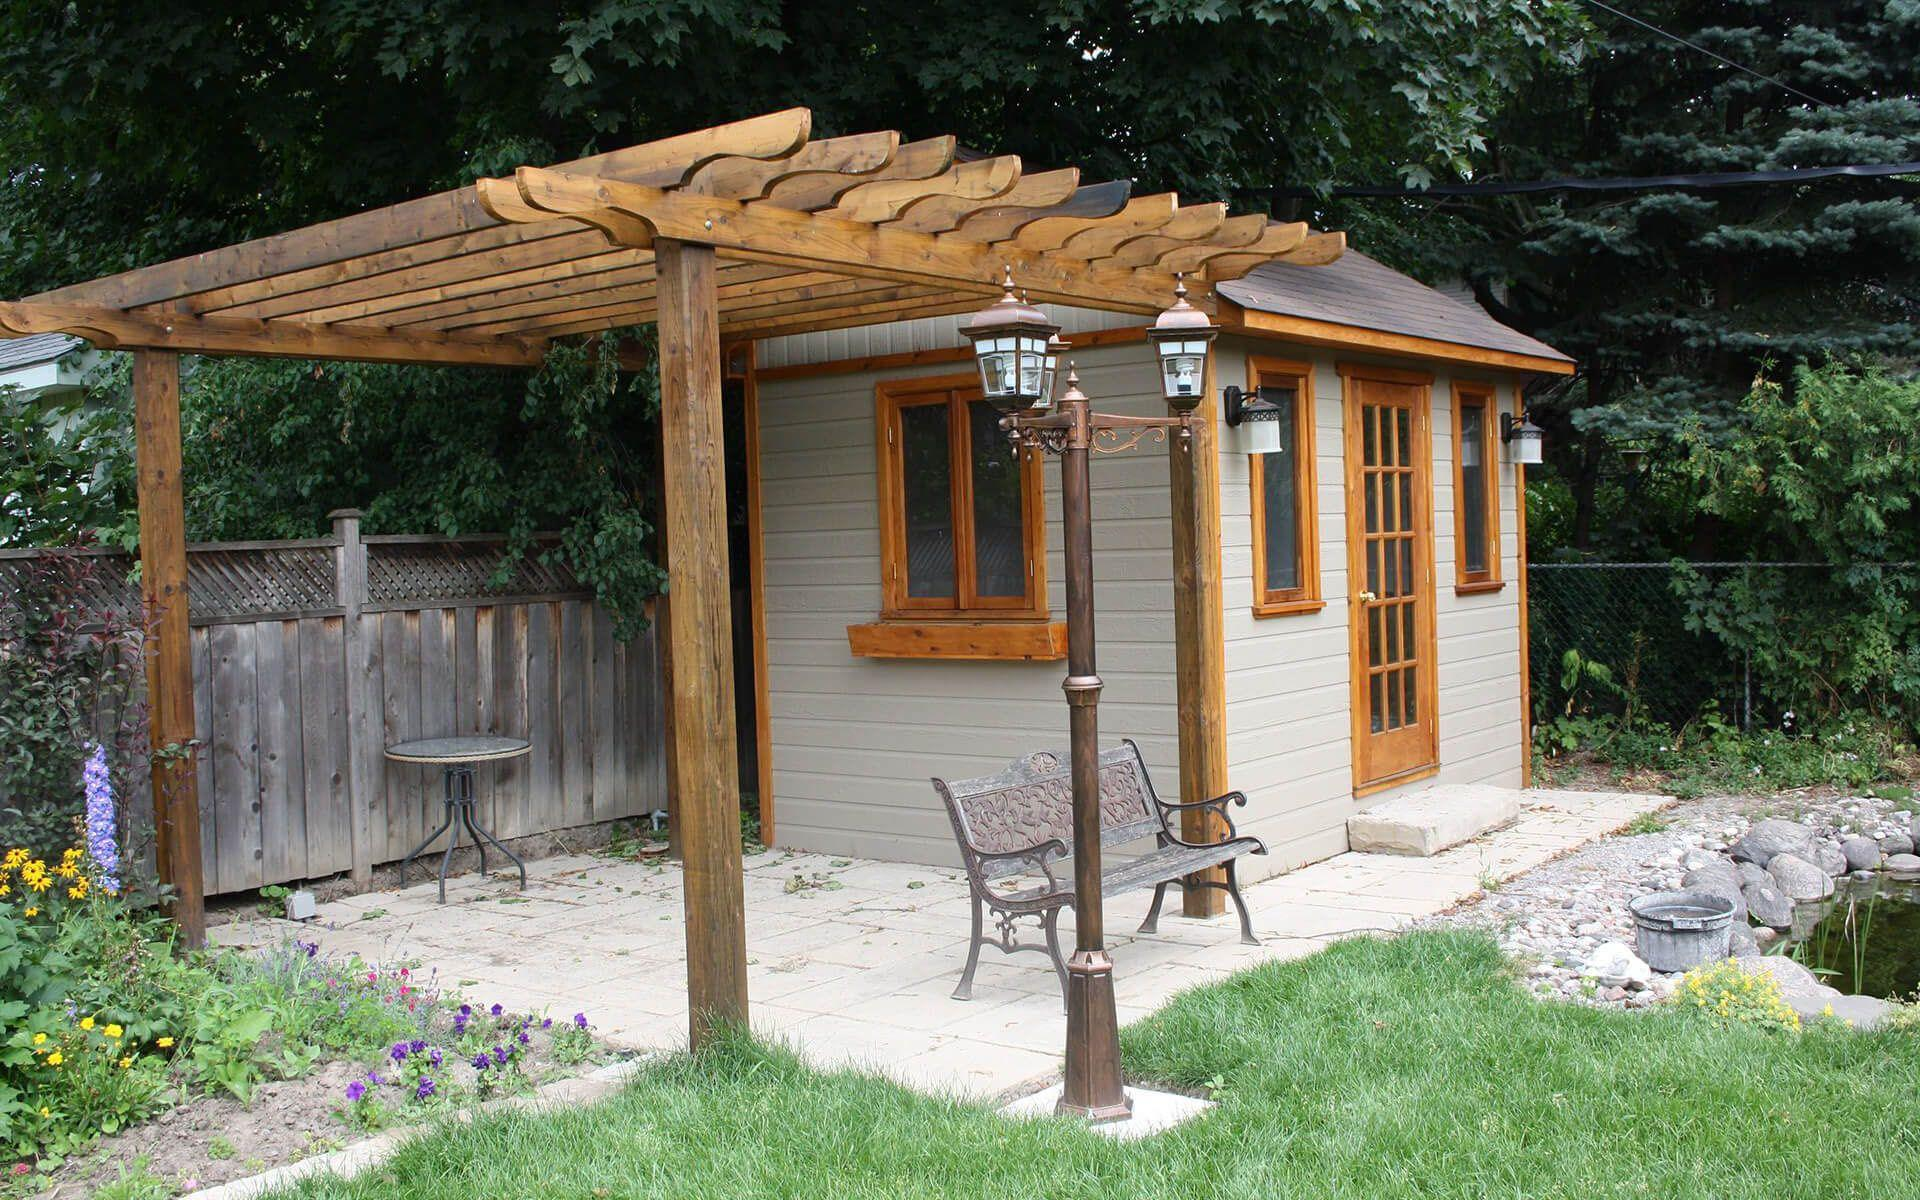 8 x 12 Palmerston garden shed with adjoining trellis